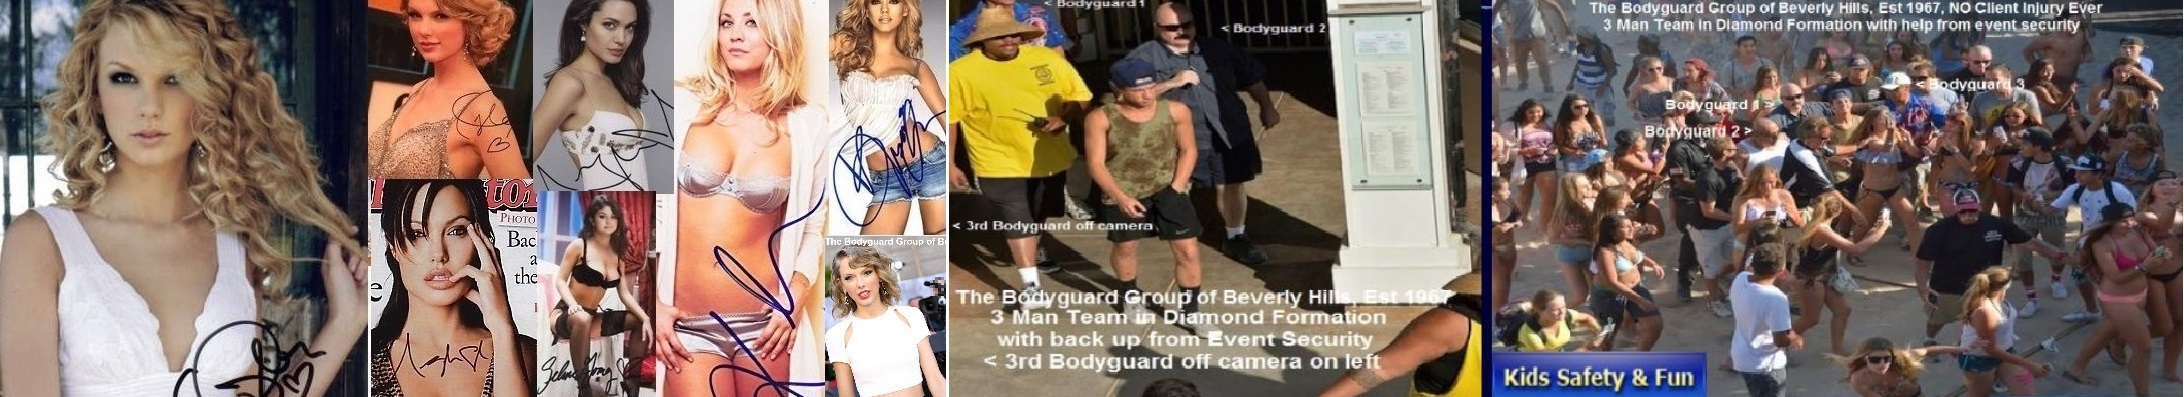 Famous celebrity bodyguard Kris Herzog, The Bodyguard Group of Beverly Hills, 90210, Los Angeles celebrity bodyguards for hire